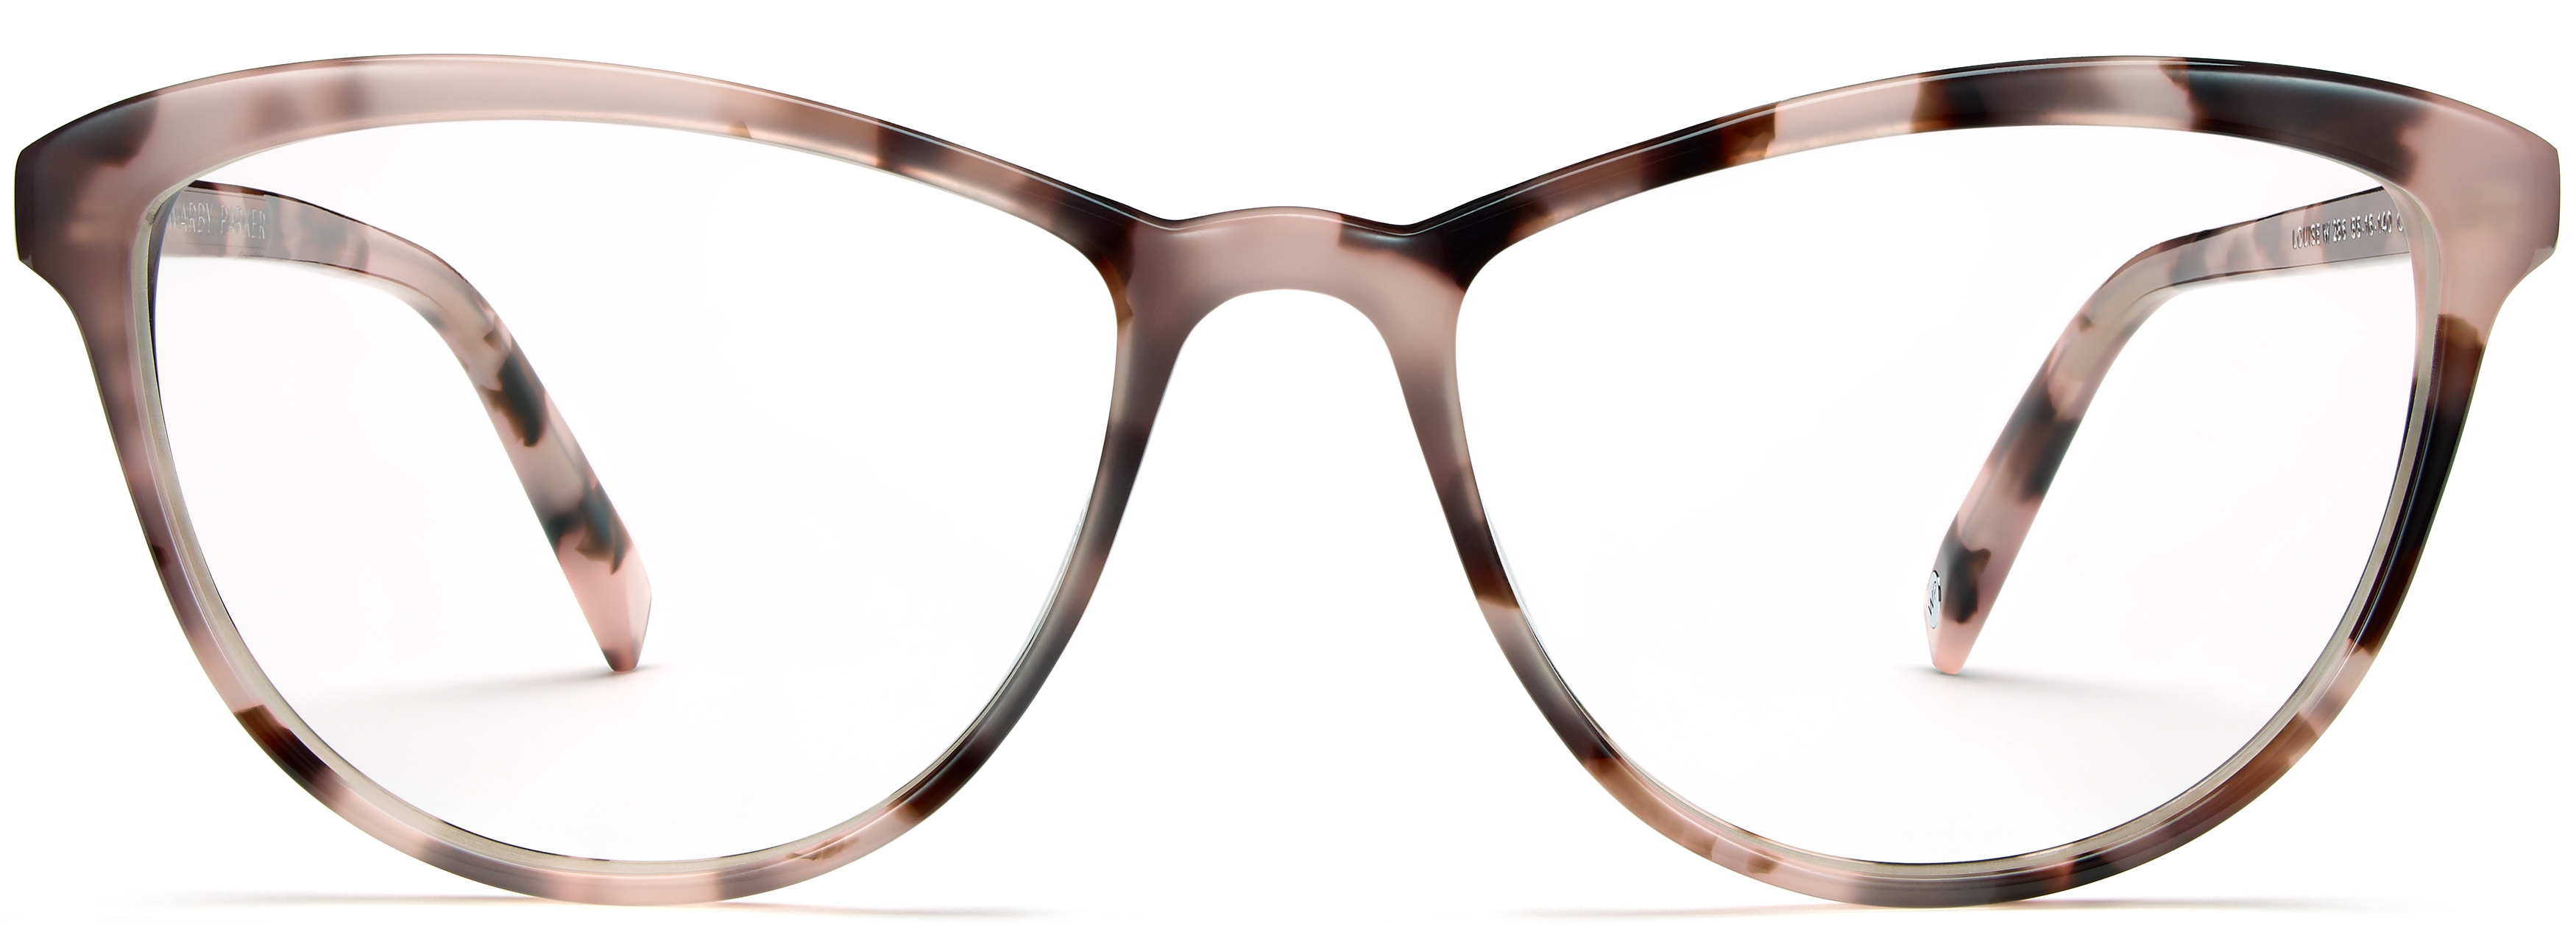 2f97aad07b Affordable Designer Prescription Eyewear from Warby Parker Now ...